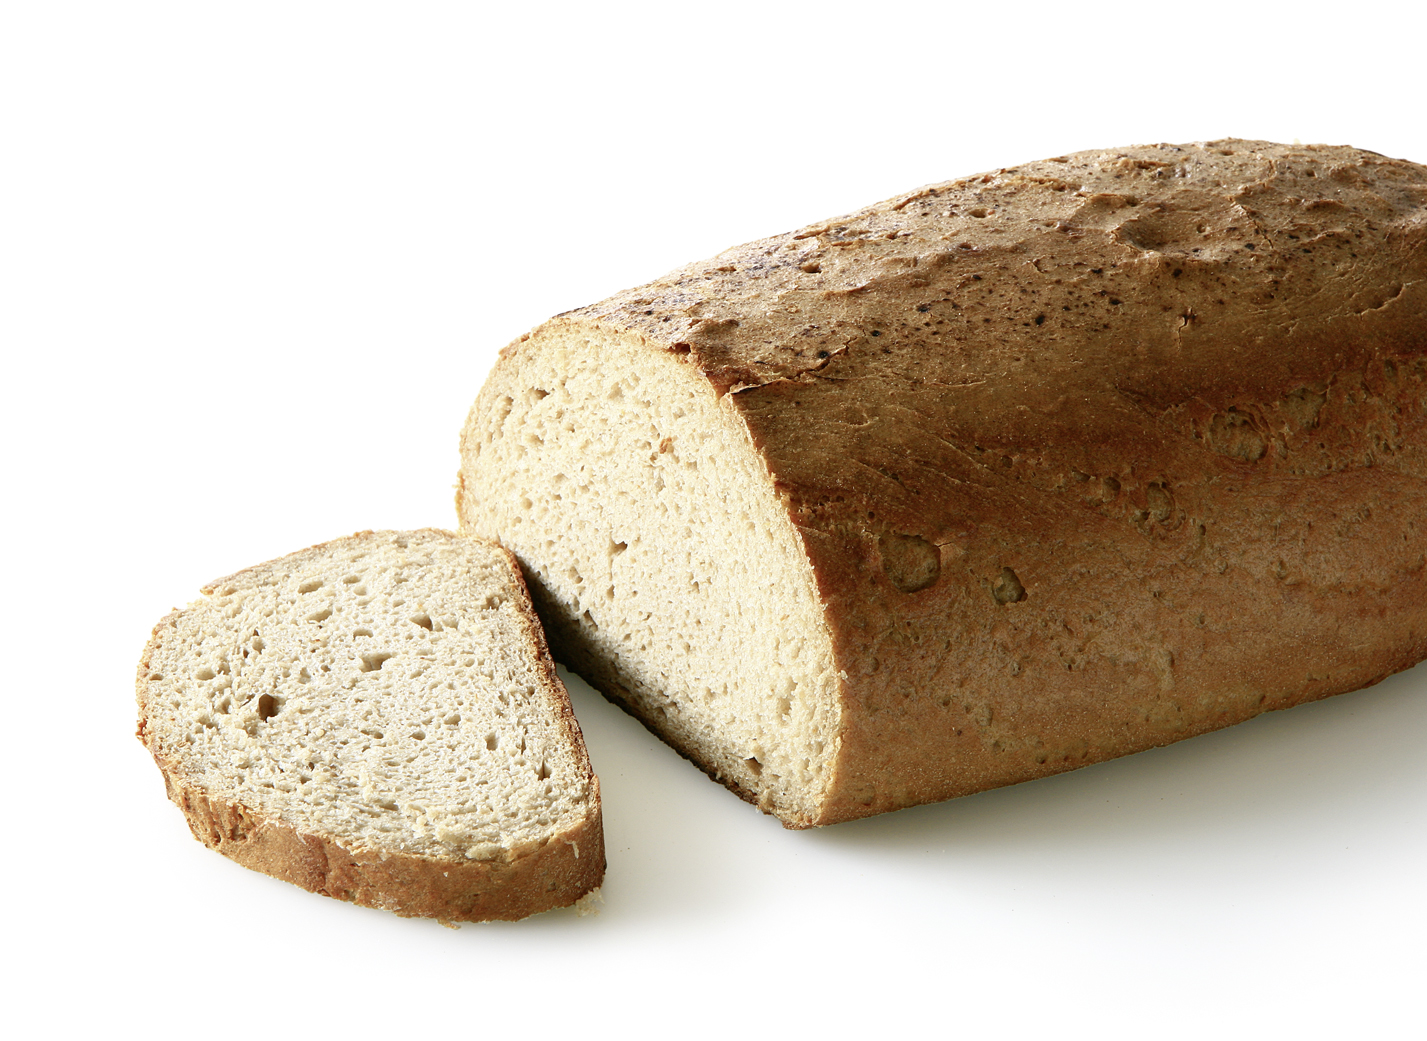 Lüneburger Country Bread - Wheat mixed bread with 34% wheat flour length: 31.5 cm